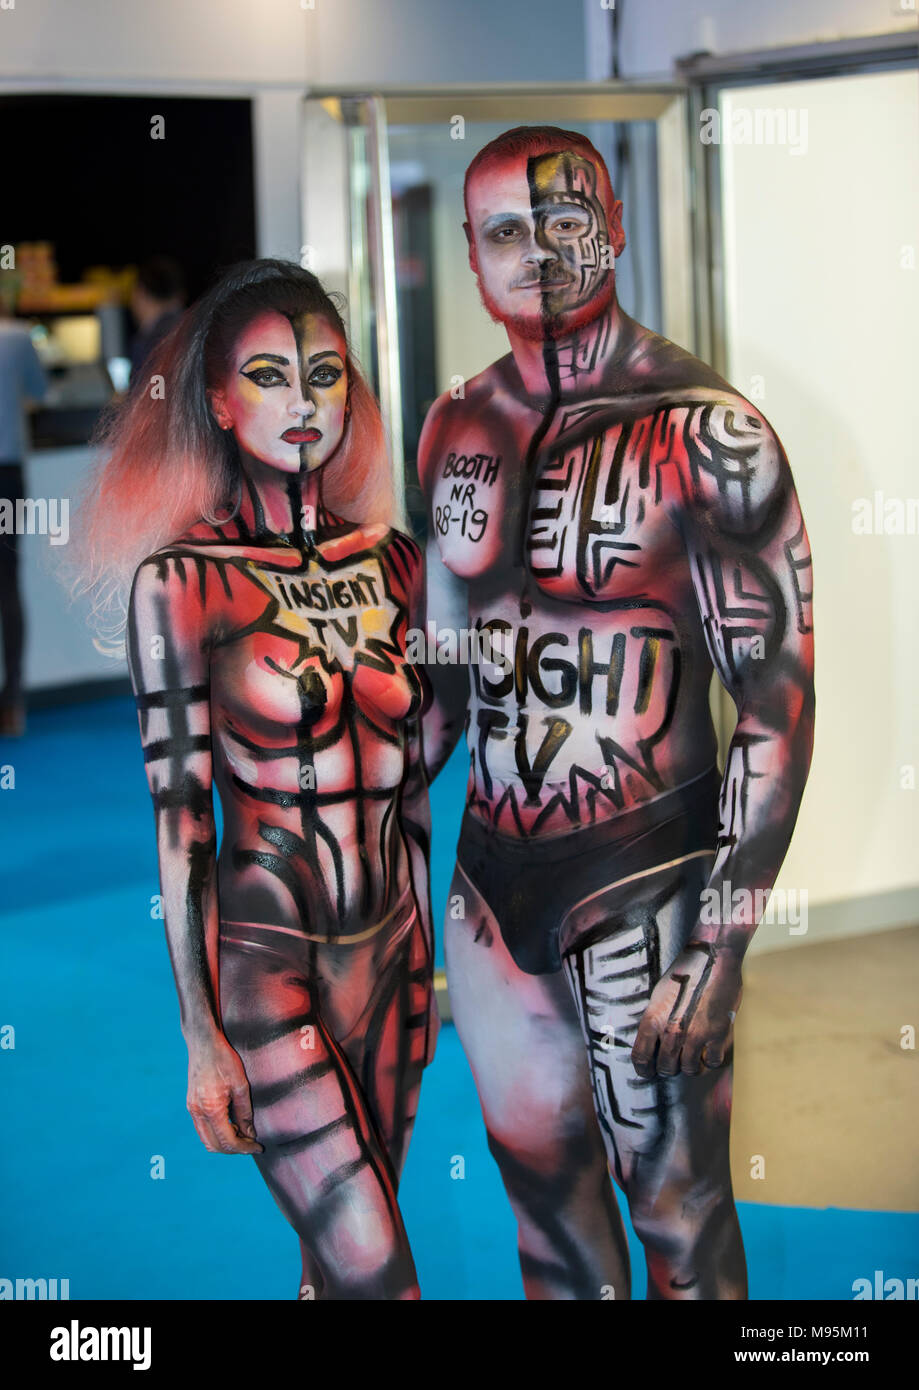 Performing Body Painting On Women And Man Stock Photo Alamy